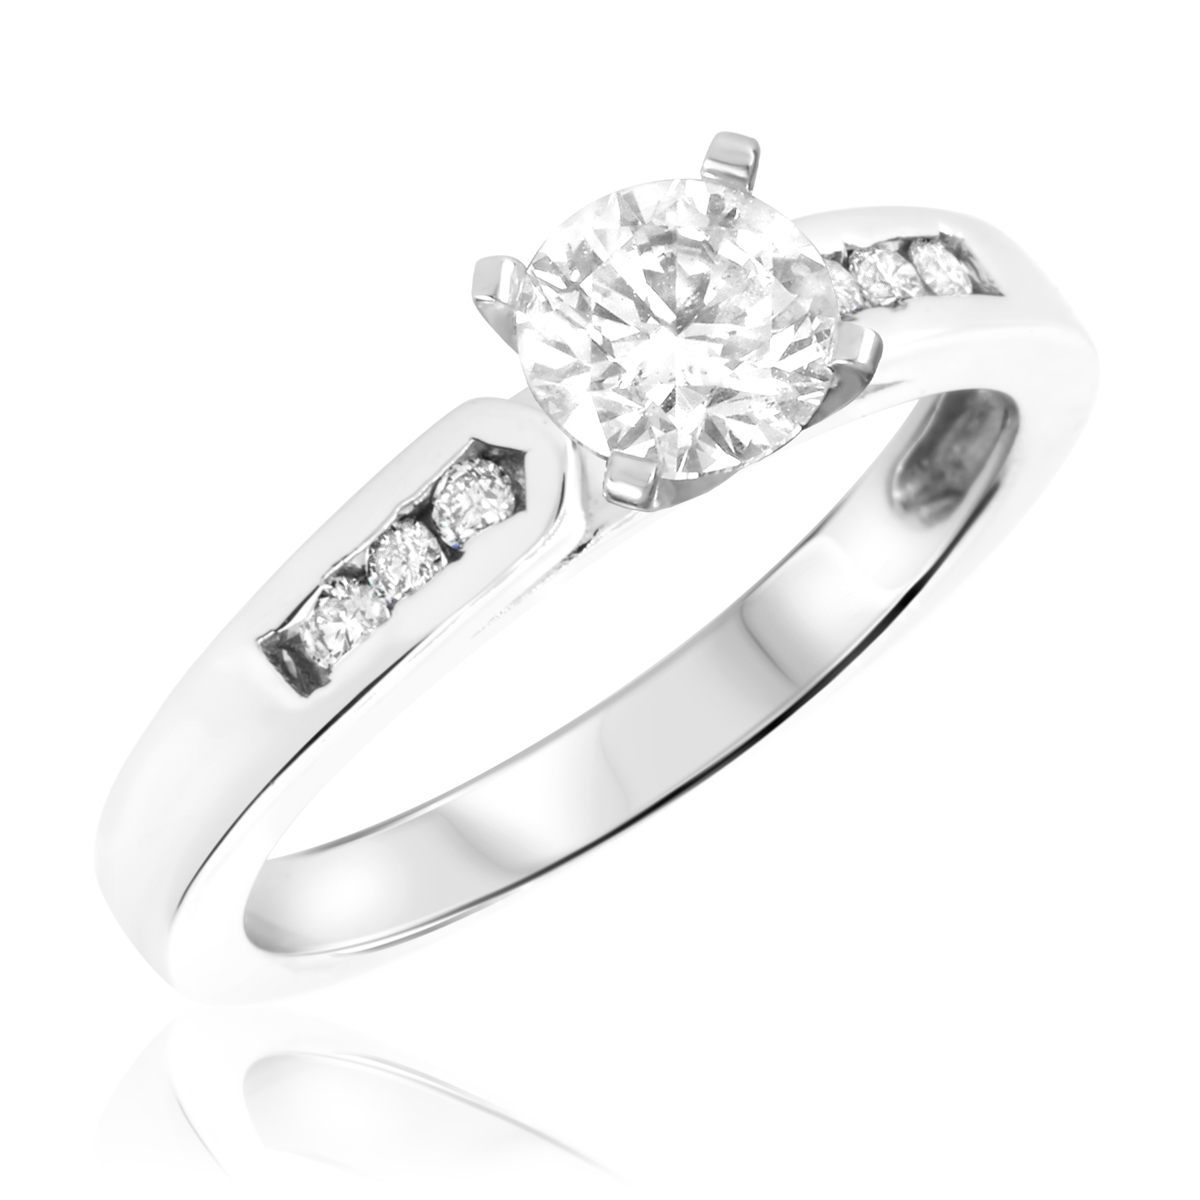 1 1/4 CT. T.W. Diamond Ladies Engagement Ring 14K White Gold- Size 8